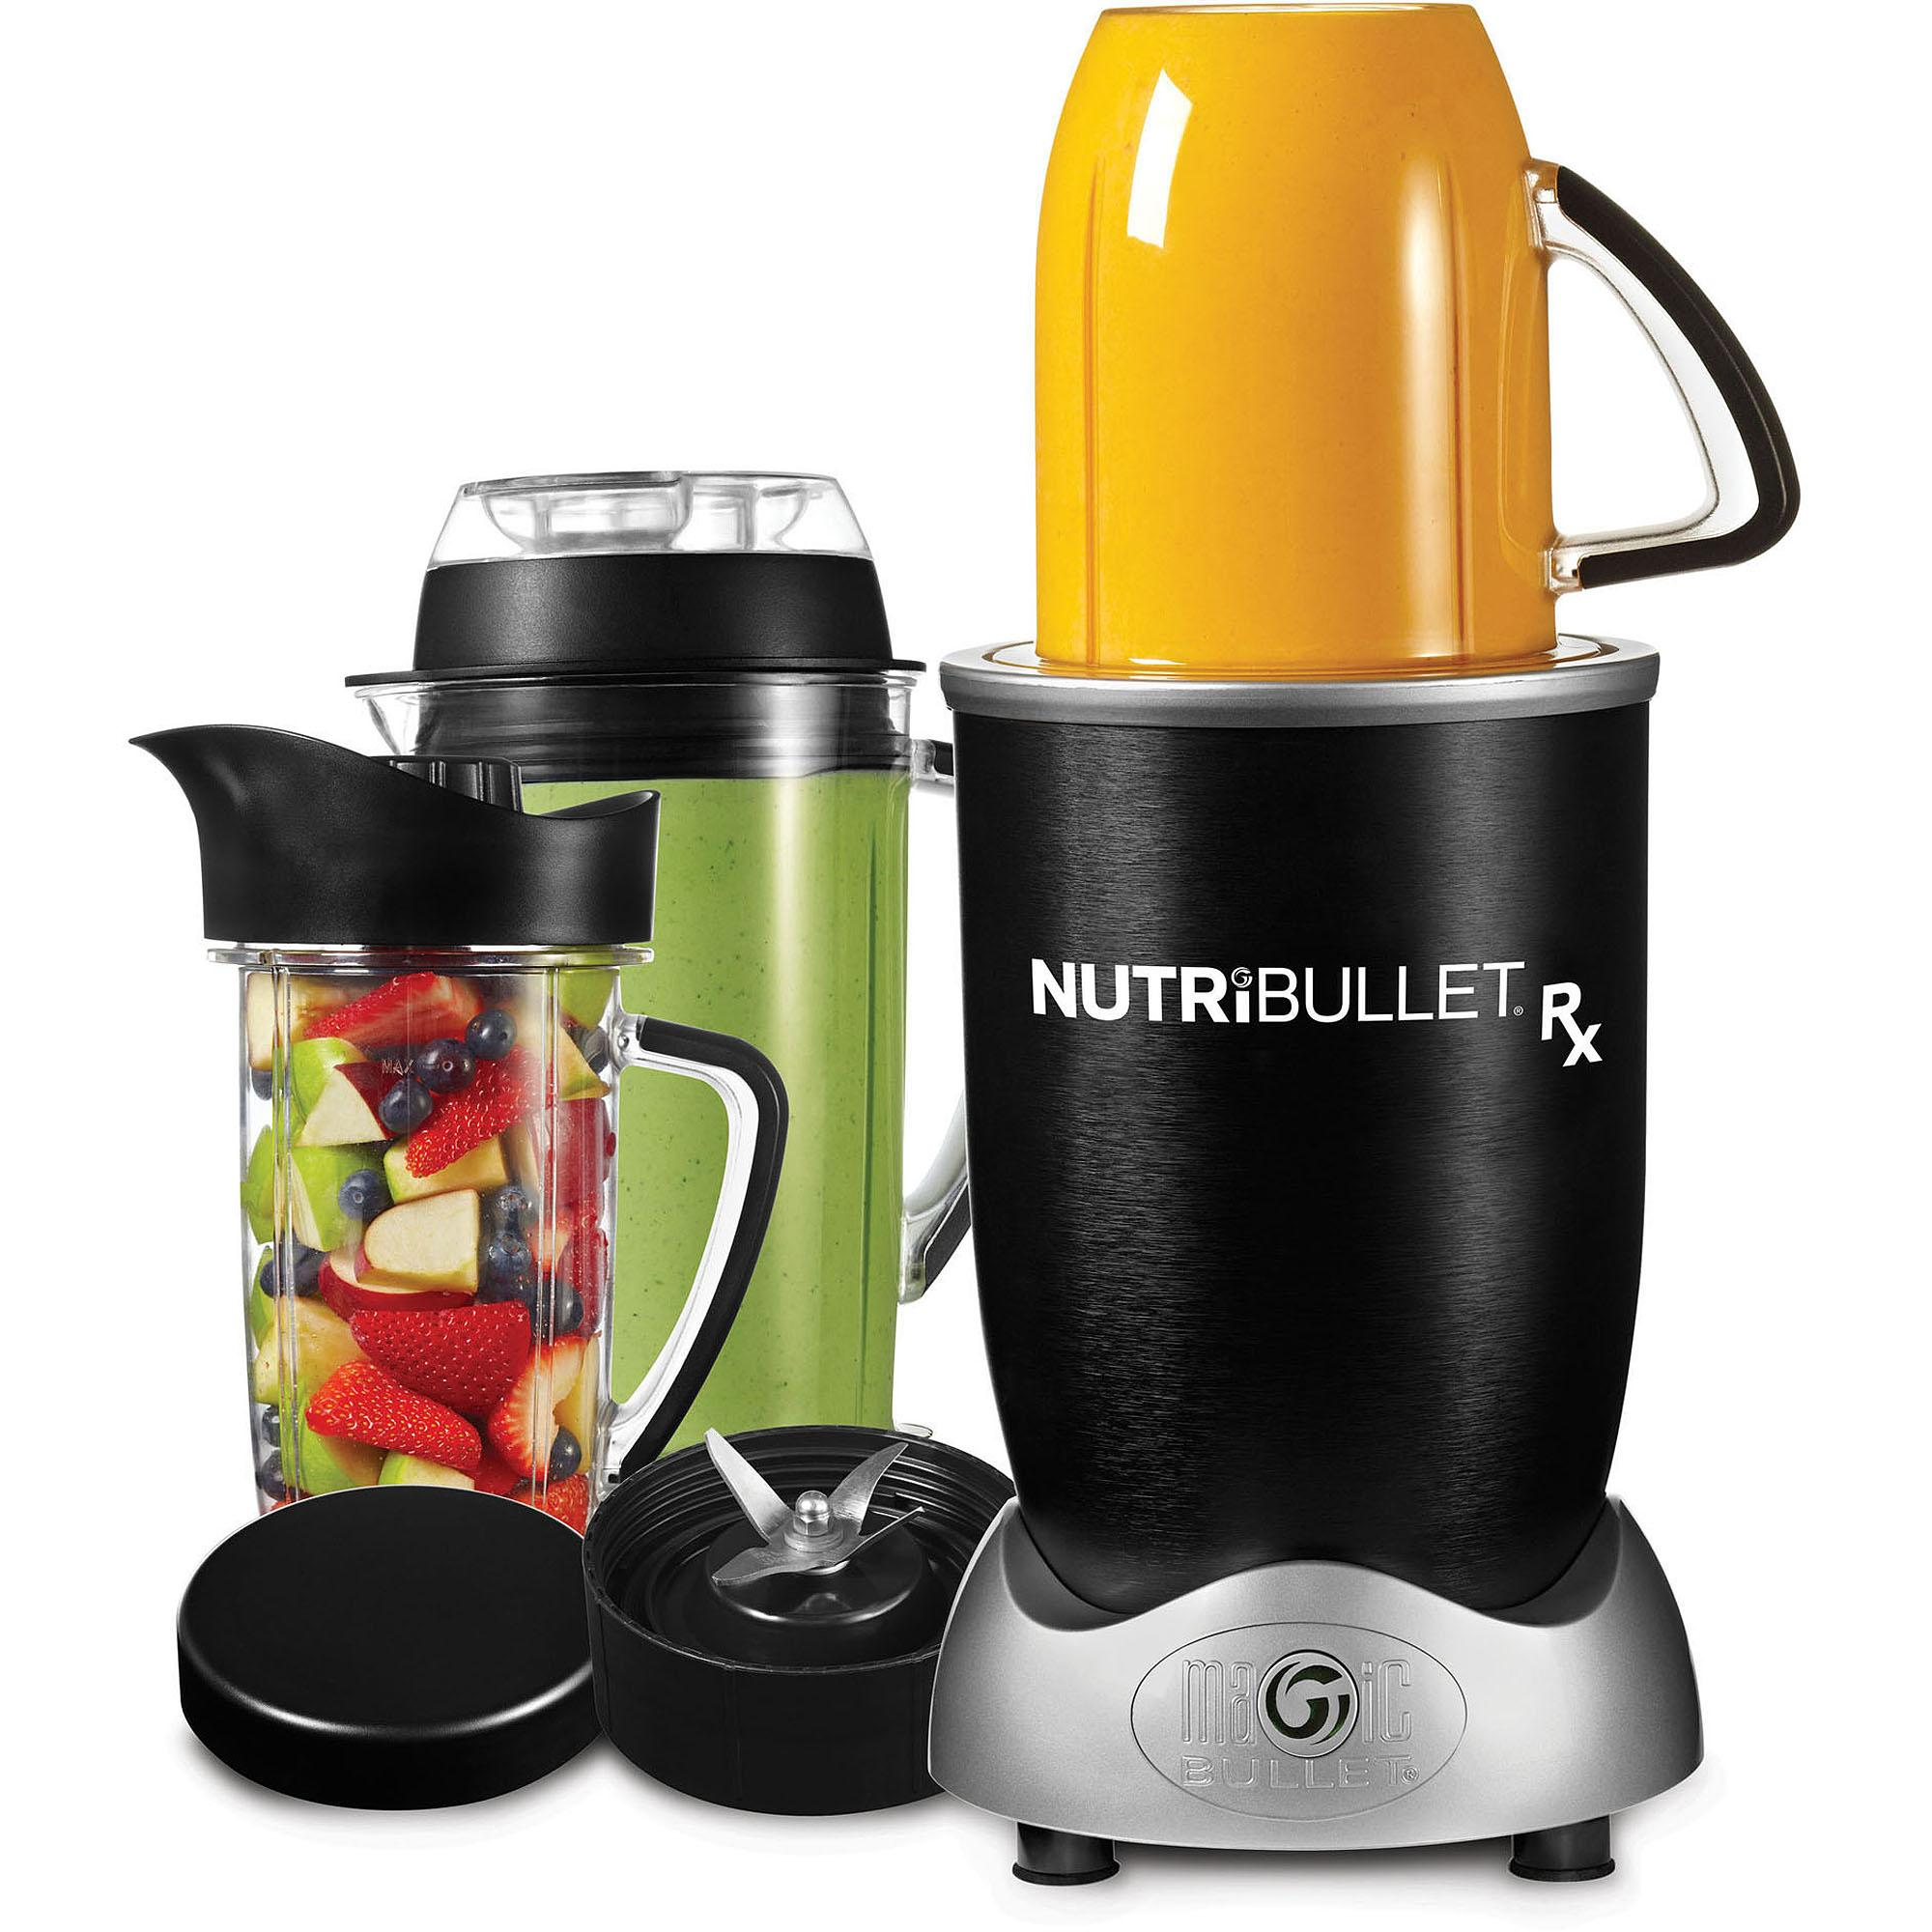 30% Off Magic Bullet Nutribullet RX Blender Smart Technology with Auto Start and Stop